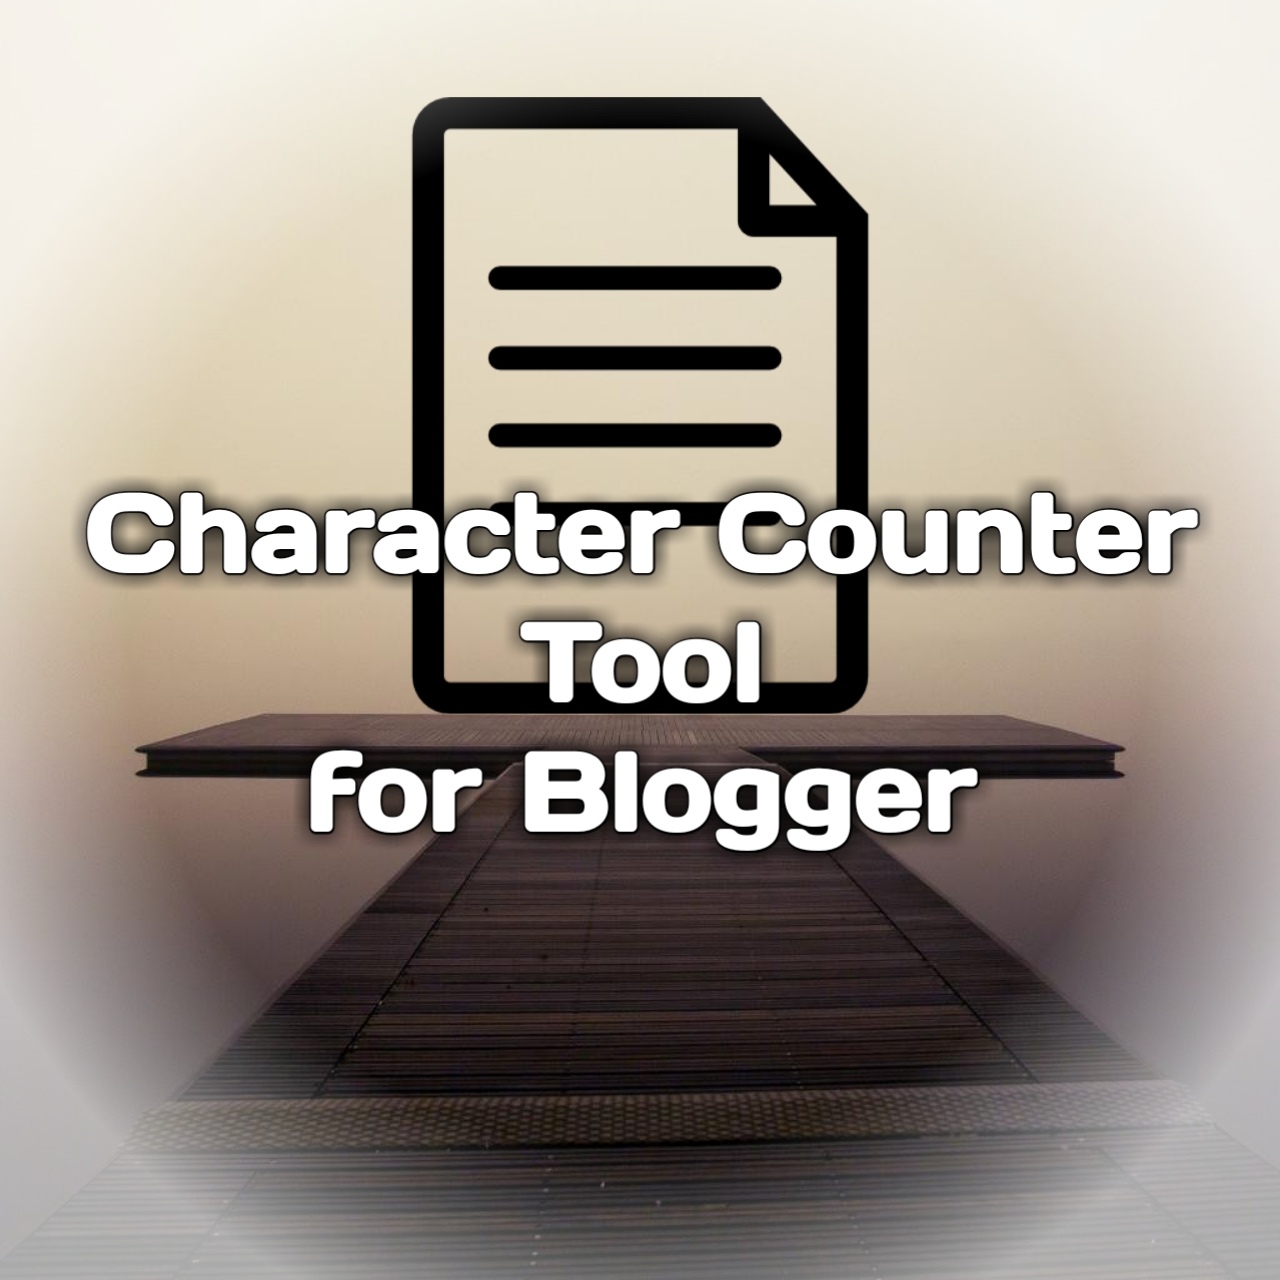 How to add a character counter Tool in Blogger? Complete Tutorial